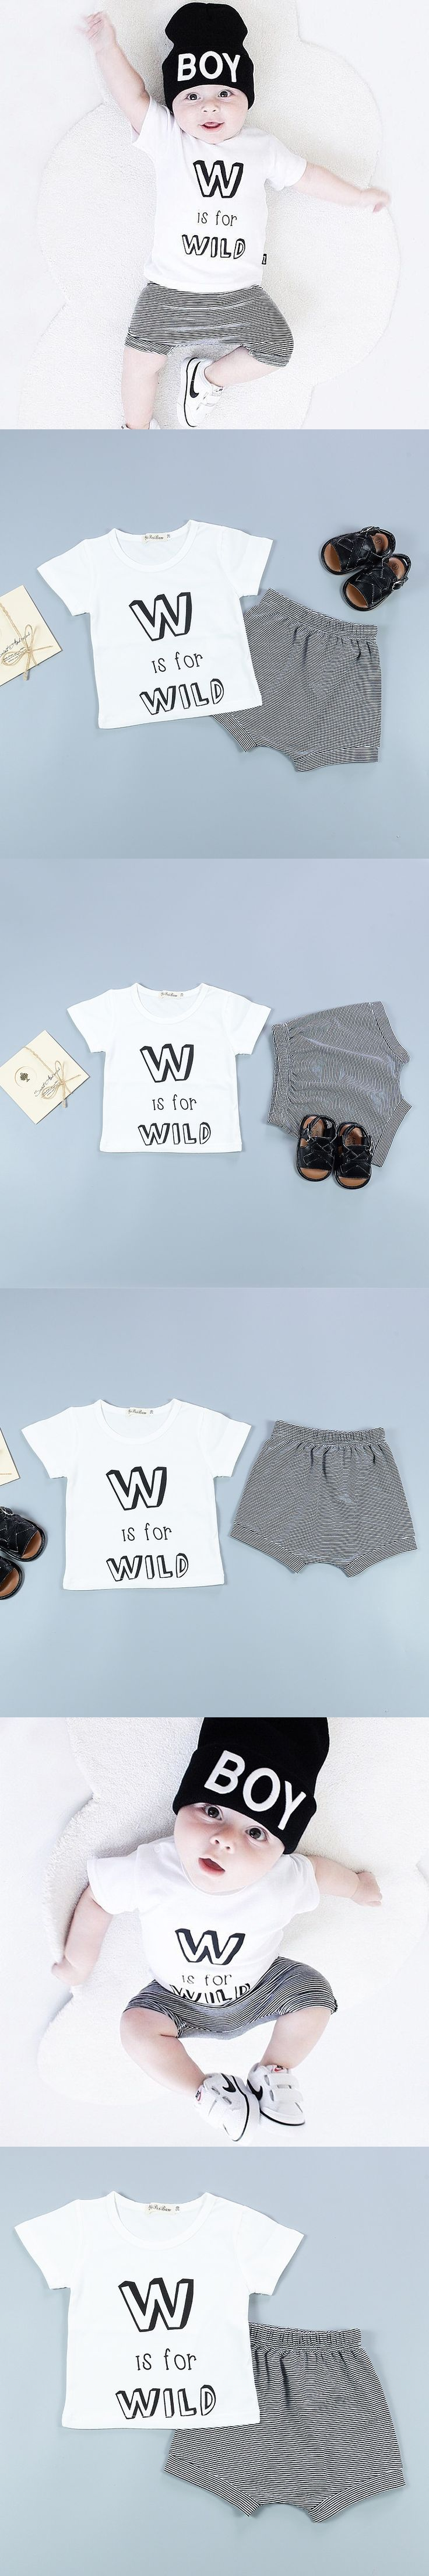 217 New Cheap Baby Boy Clothes Boys Set Cotton Letters T-shirt Shorts 2pcs Short Sleeve Summer Style Kids Costume Clothing Sets